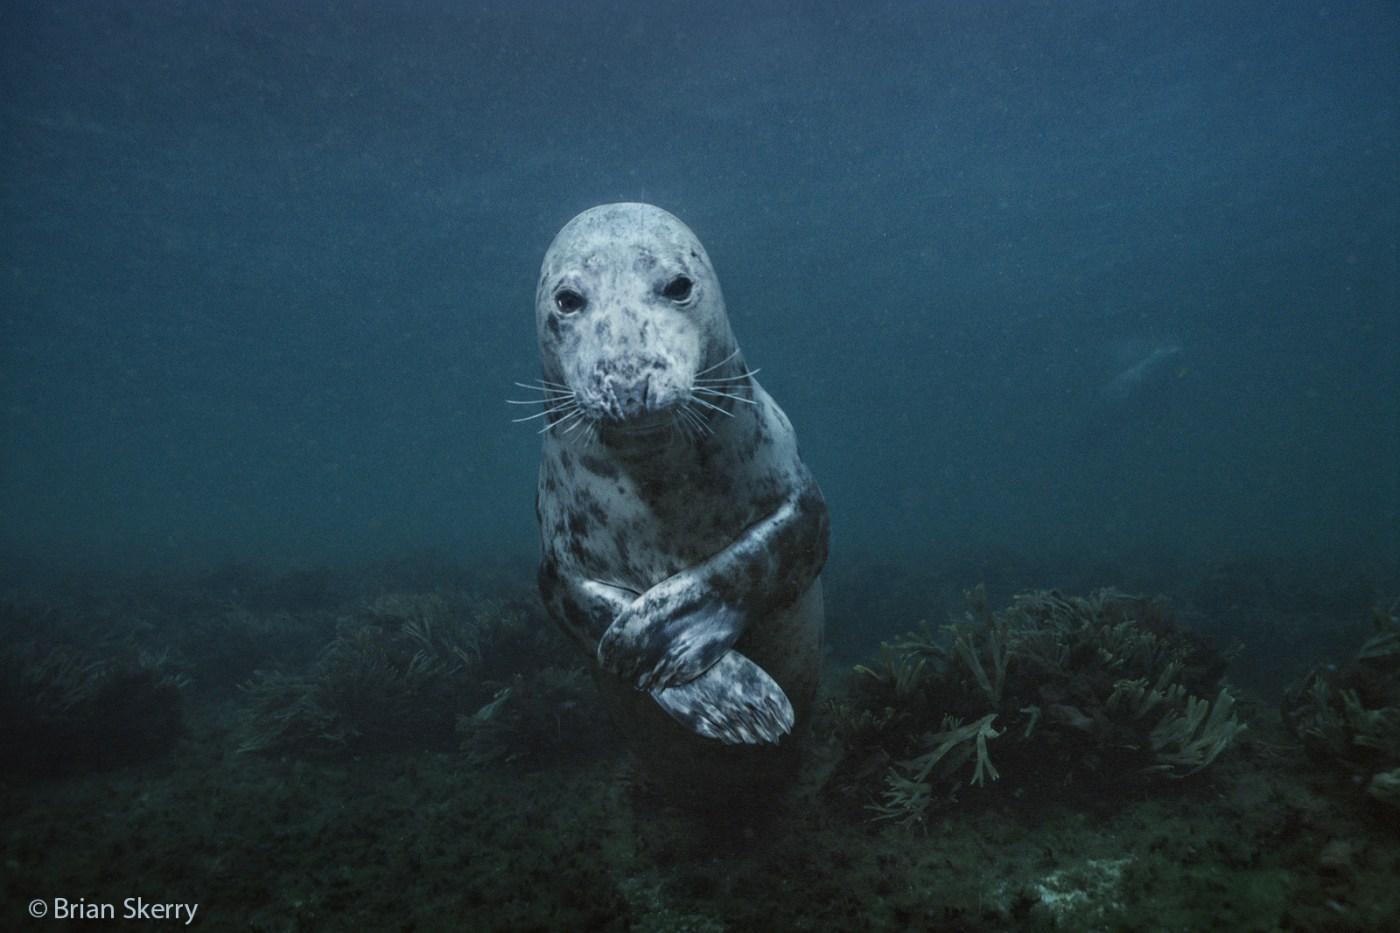 Brian Skerry: The Evolution of an Underwater Explorer